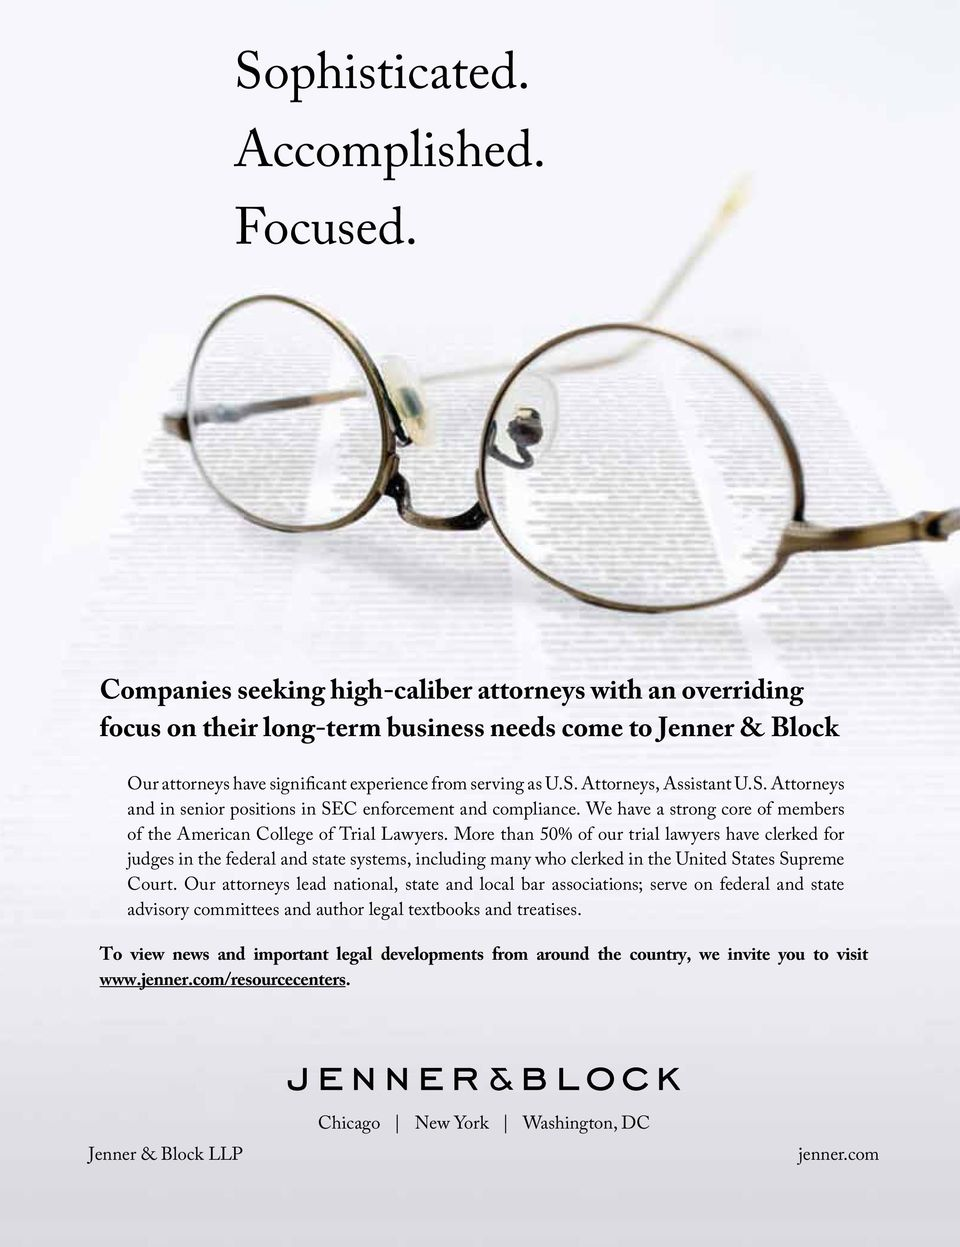 Companies seeking high-caliber attorneys with an overriding Companies seeking high-caliber attorneys with an overriding focus on their long-term business needs come to Jenner & Block focus Companies